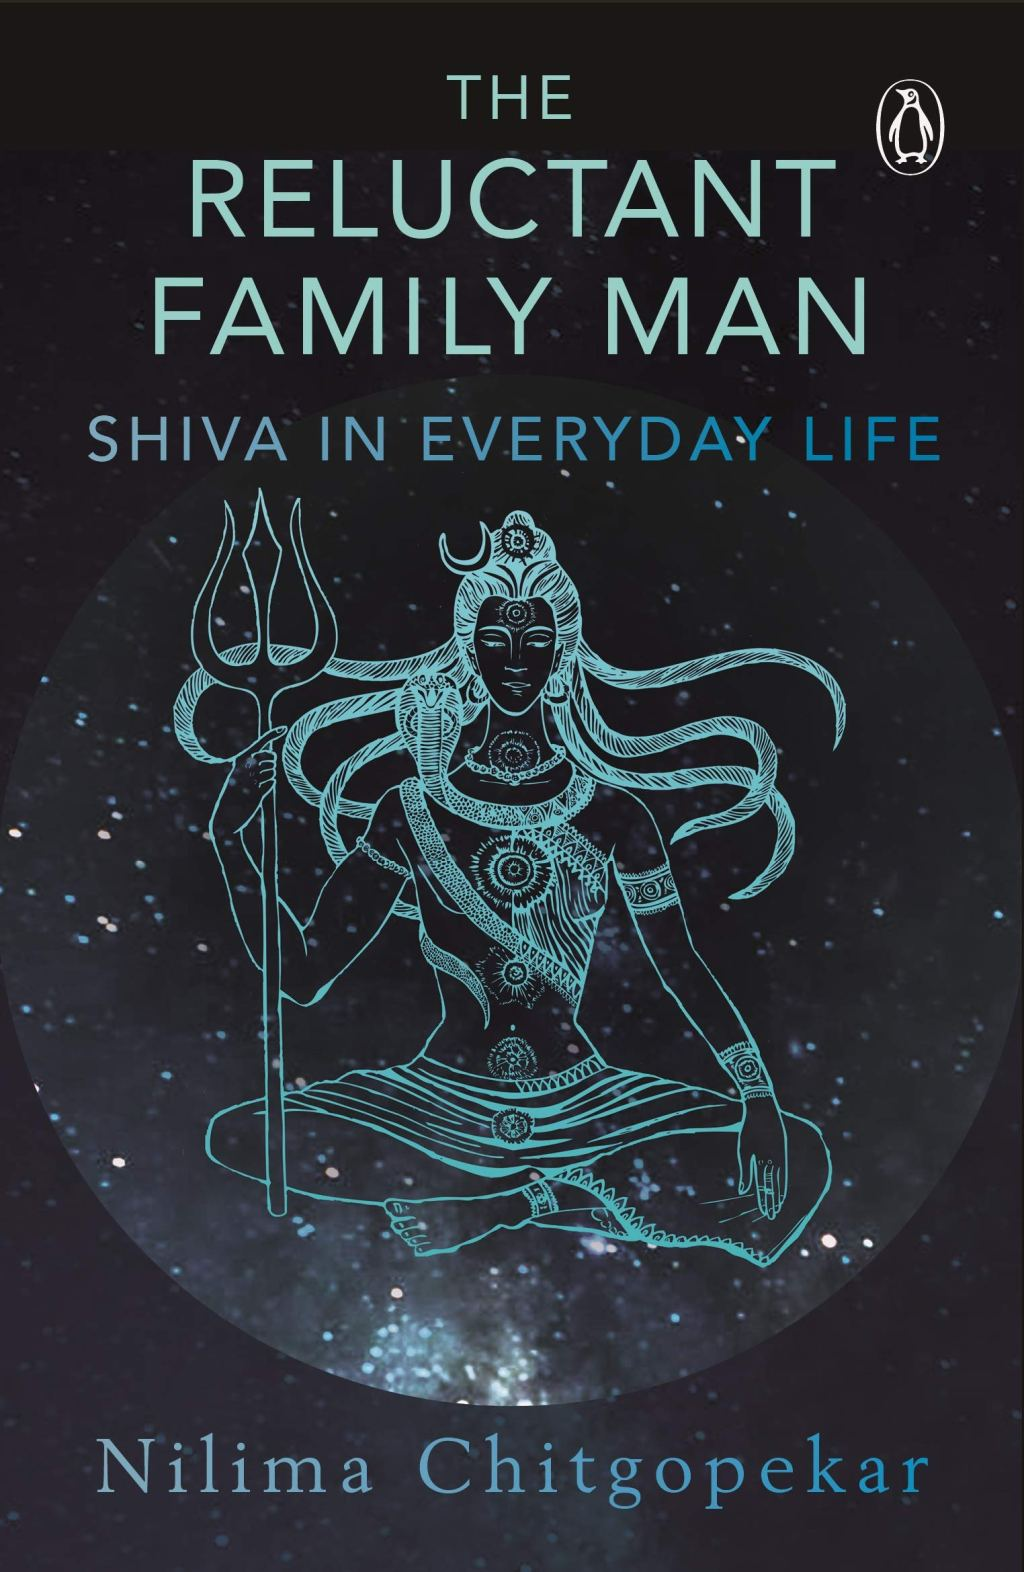 The Reluctant Family Man-Roles of Shiva